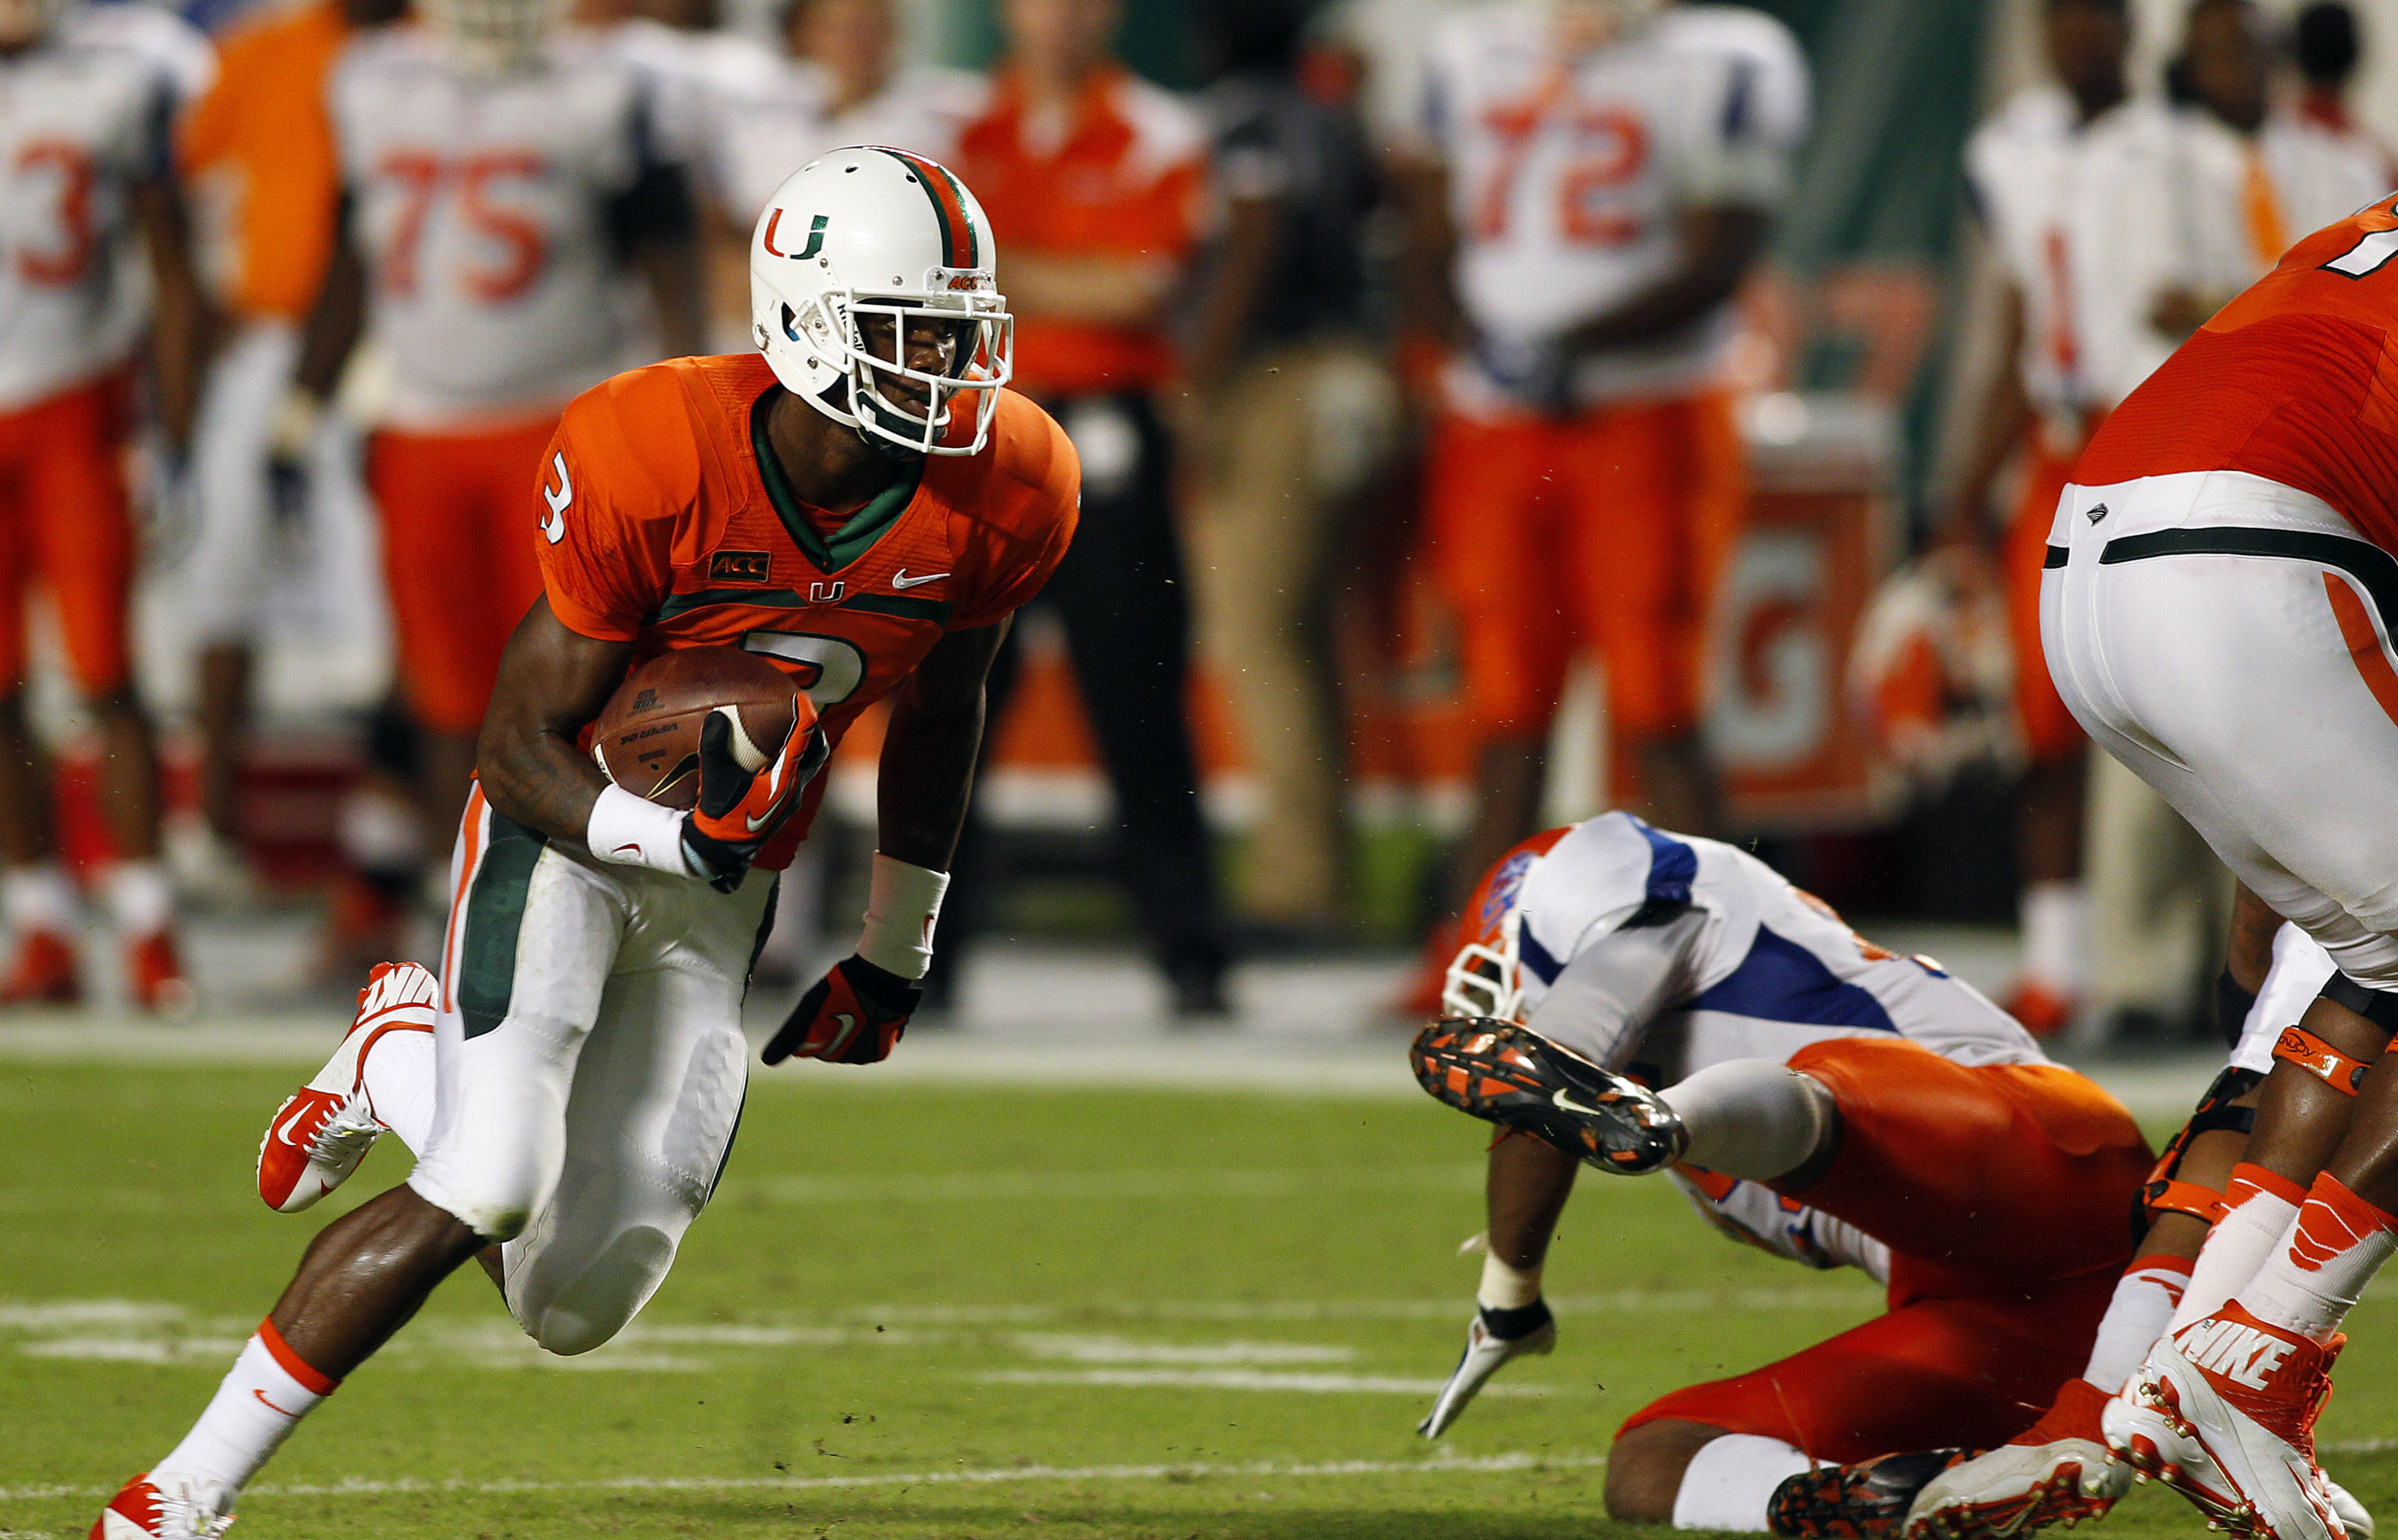 Miami, Savannah State agree to 12-minute 4th quarter with Canes up 77-7